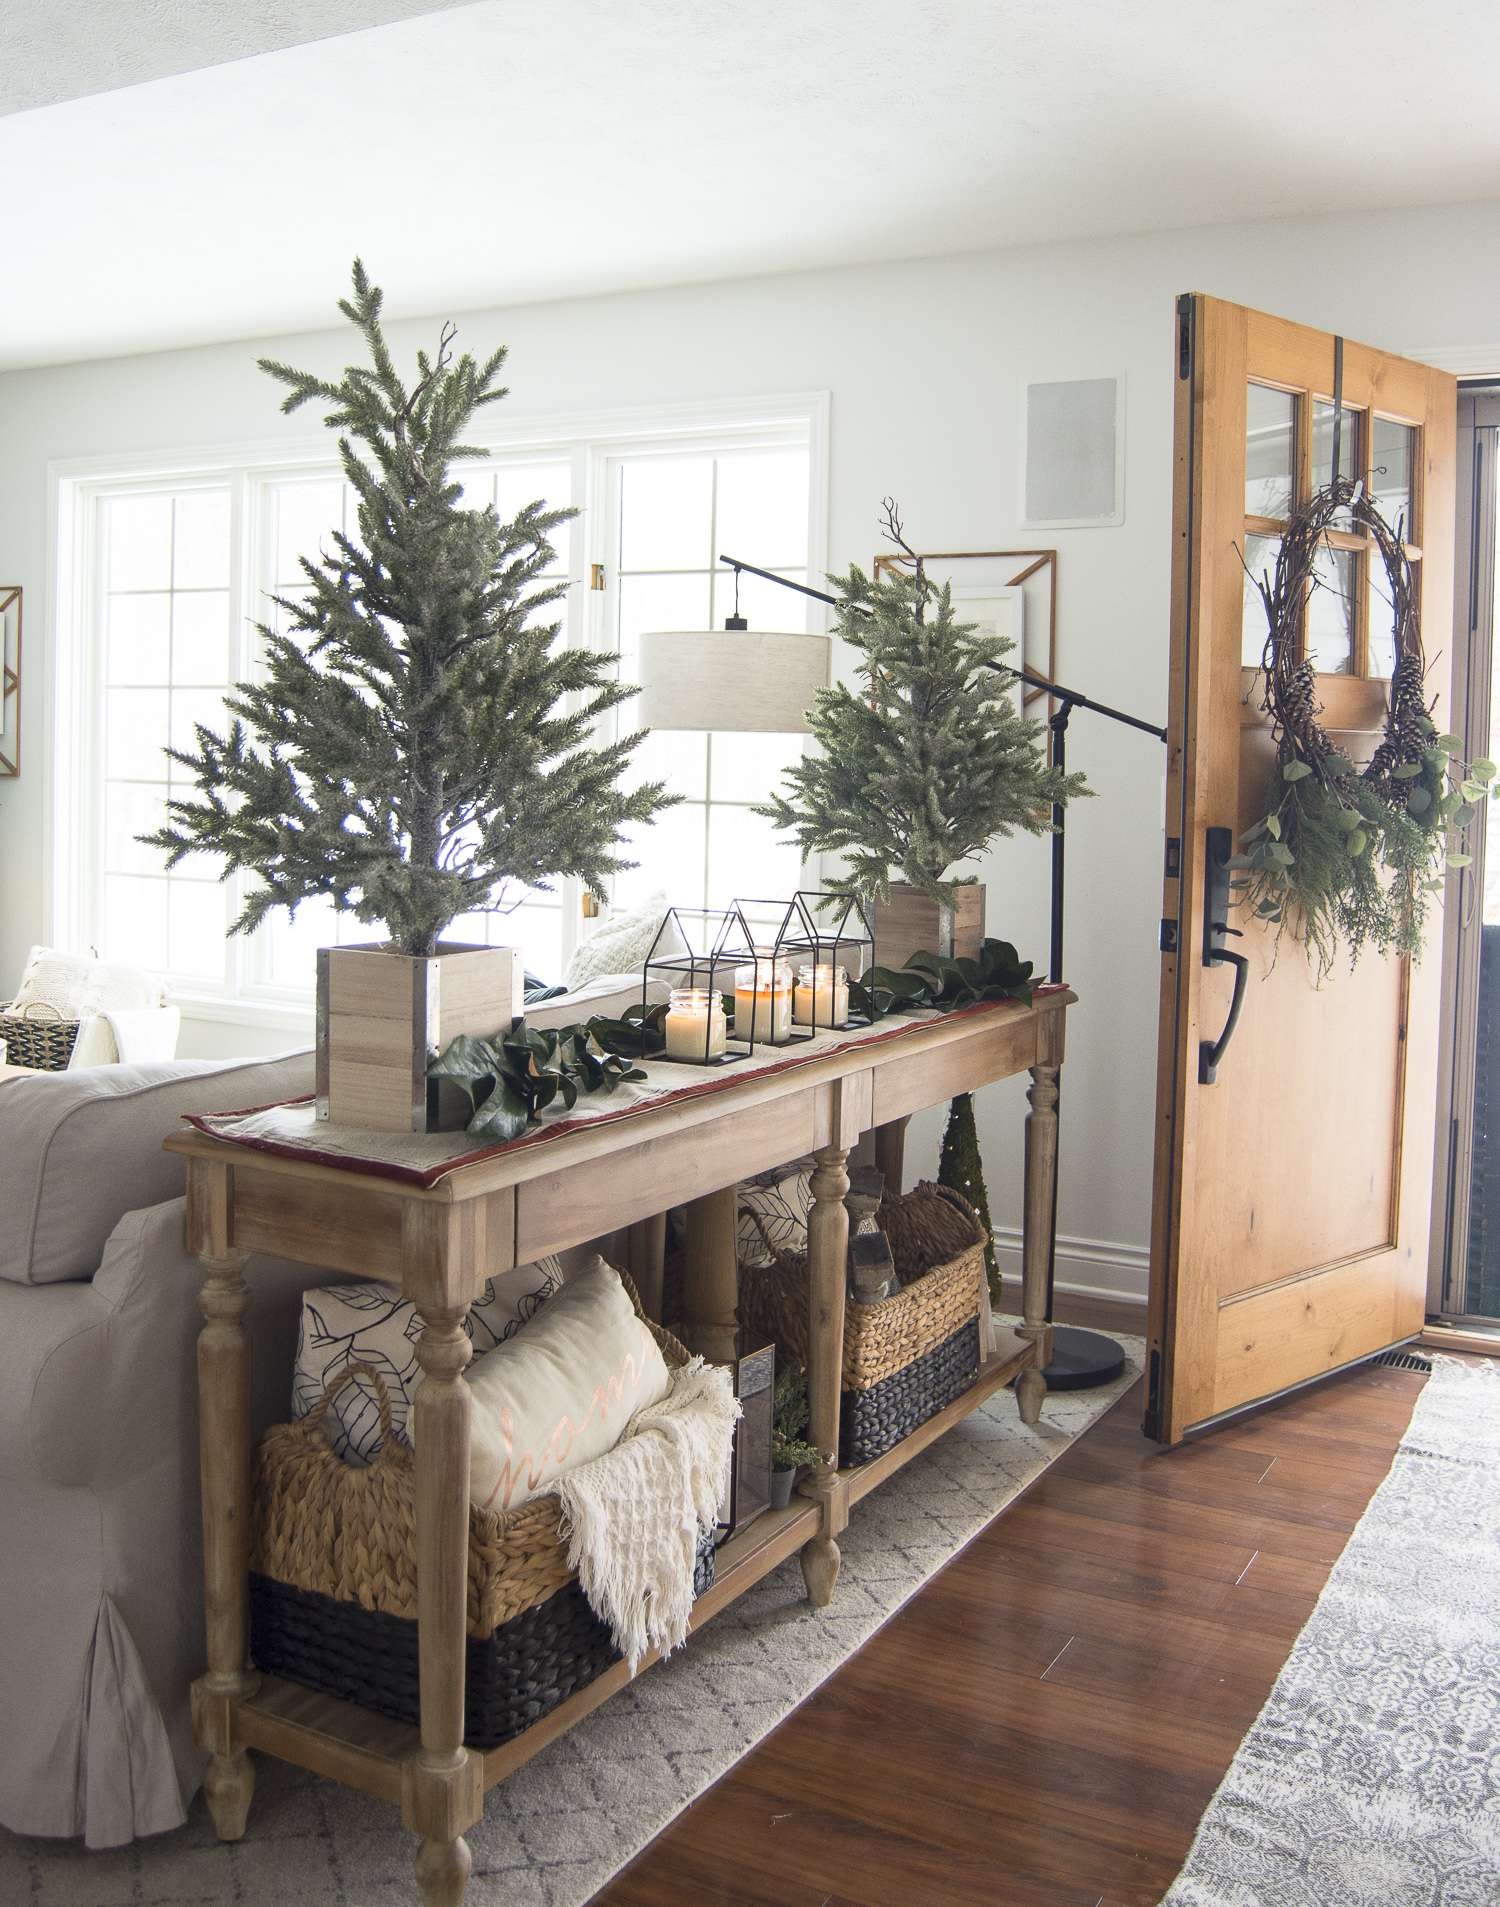 Do you have a small entryway? Today I'm sharing easy tricks and tips to style an entry with simple Christmas entryway decor. #entrywaydecor #christmasdecor #simplechristmasdecor #fromhousetohaven